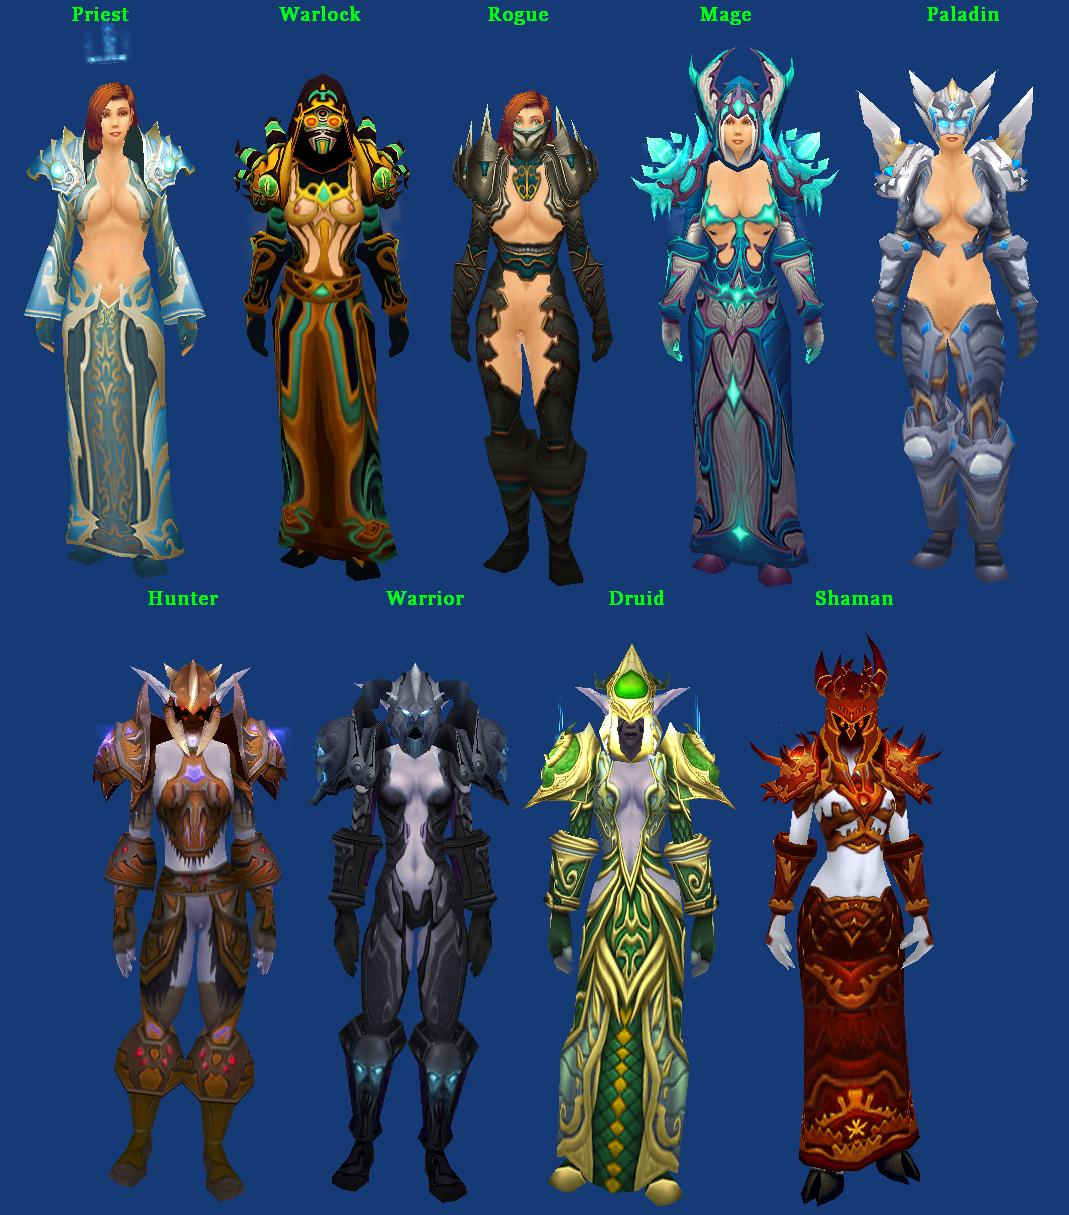 Nude patch world warcraft of 2011